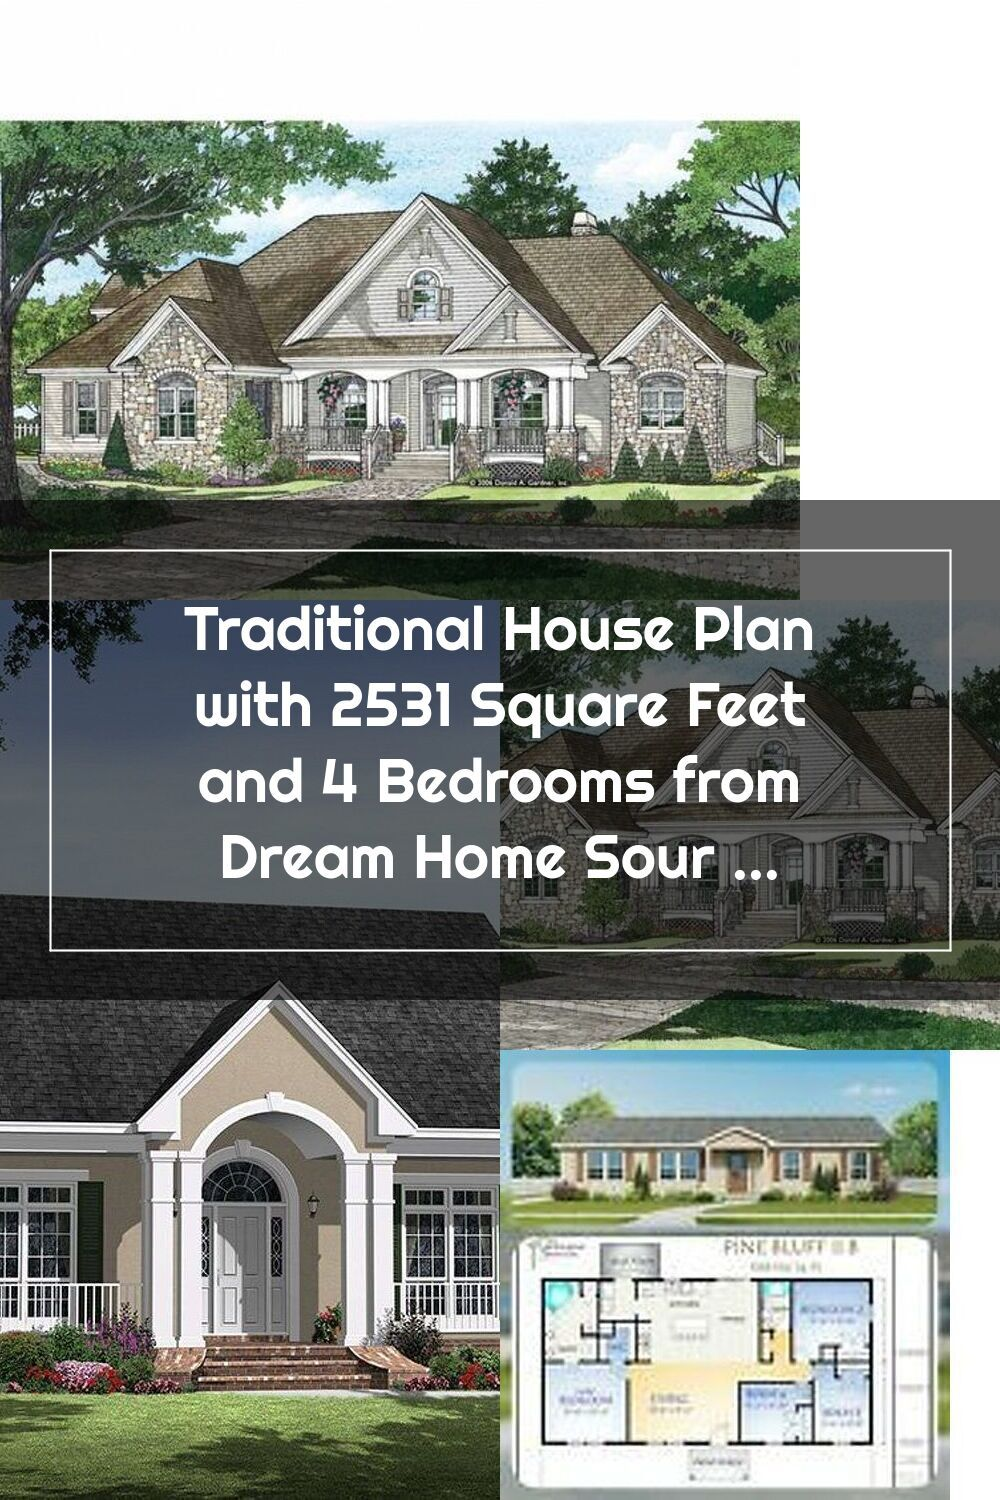 Traditional House Plan With 2531 Square Feet And 4 Bedrooms From Dream Home House Plans Traditional House Plan Traditional House